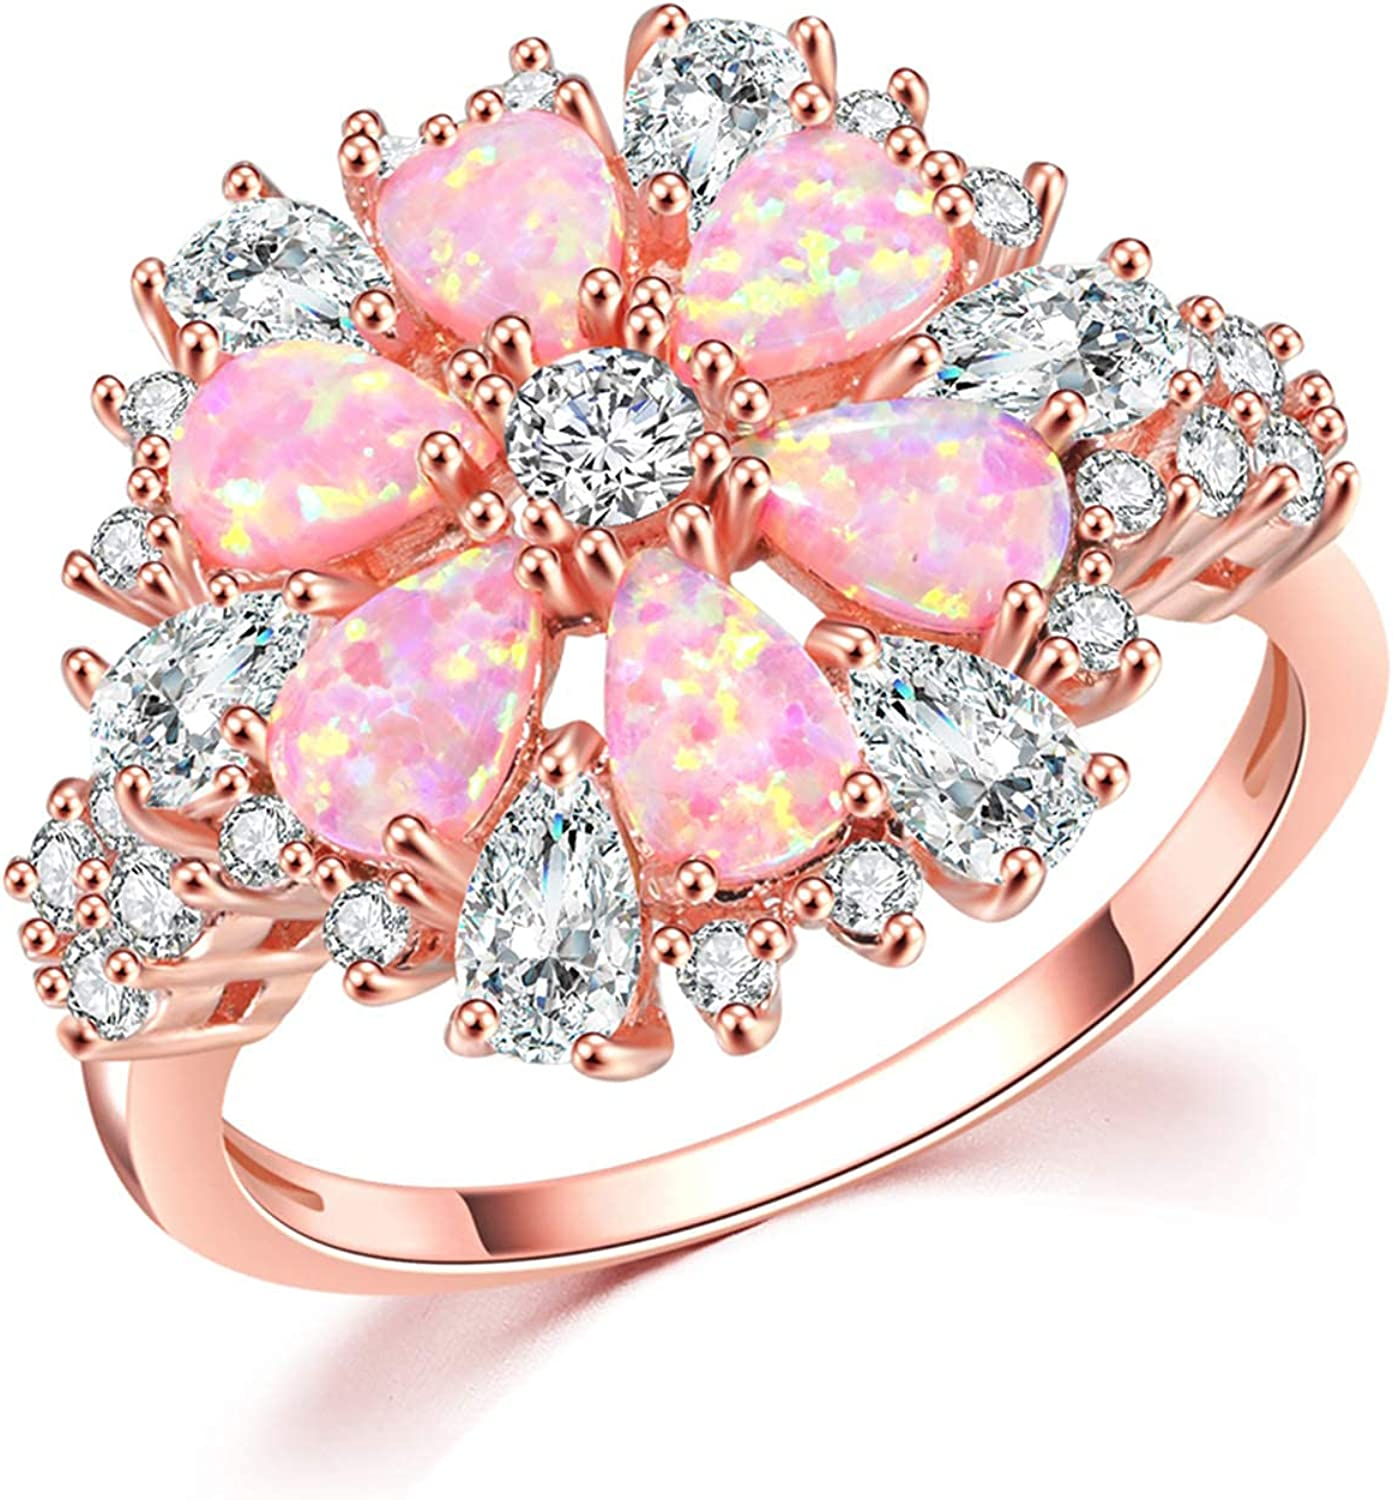 CiNily Opal Ring-14K Rose Gold Plated Pink Opal Cubic Zirconia CZ Ring Gemstone Ring for Women Size 5-12